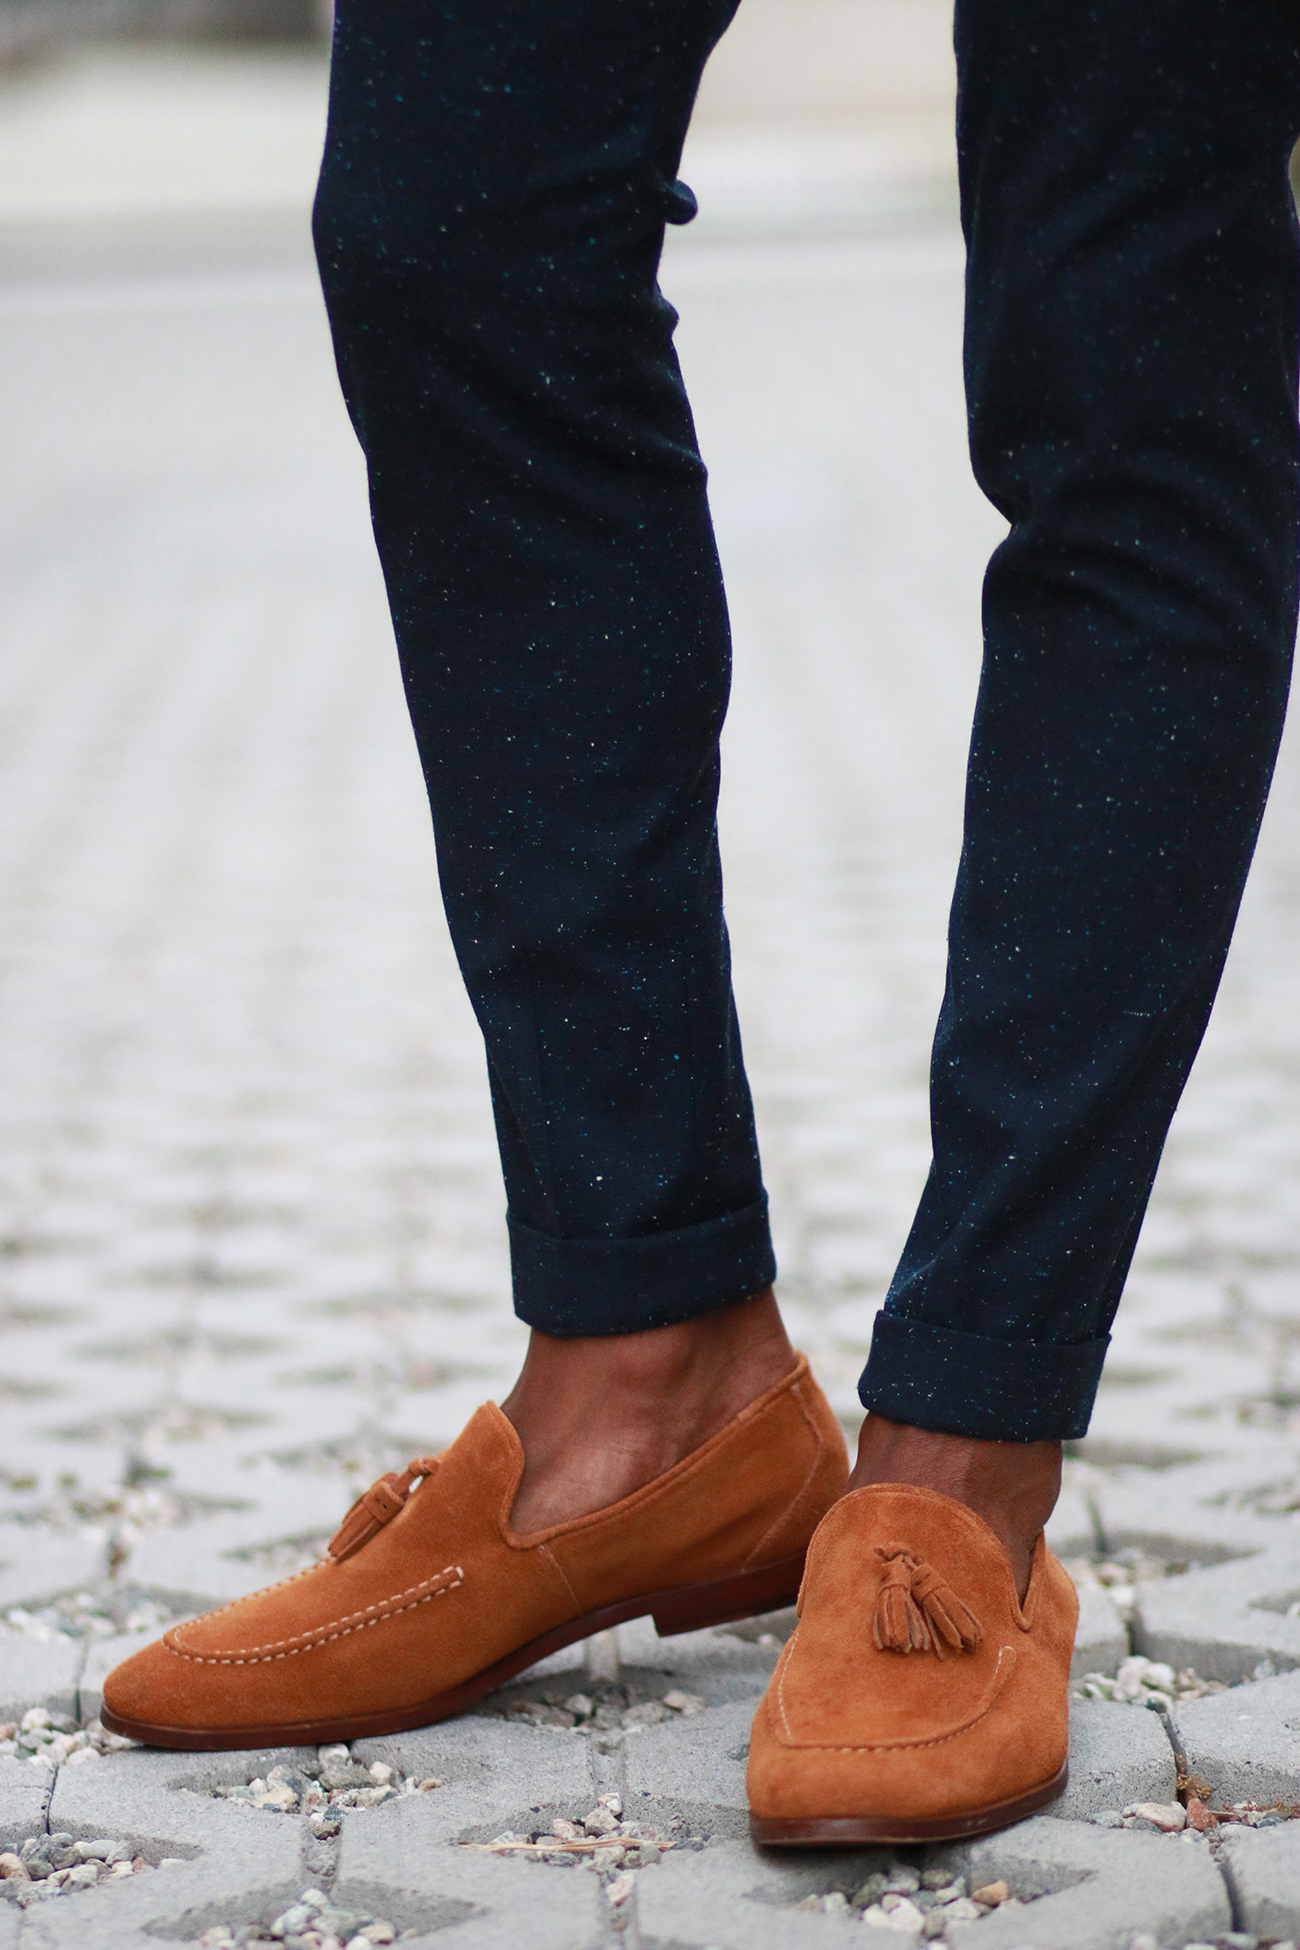 Smart Casual Replace Those Jeans With Suit Pants – Norris Danta Ford